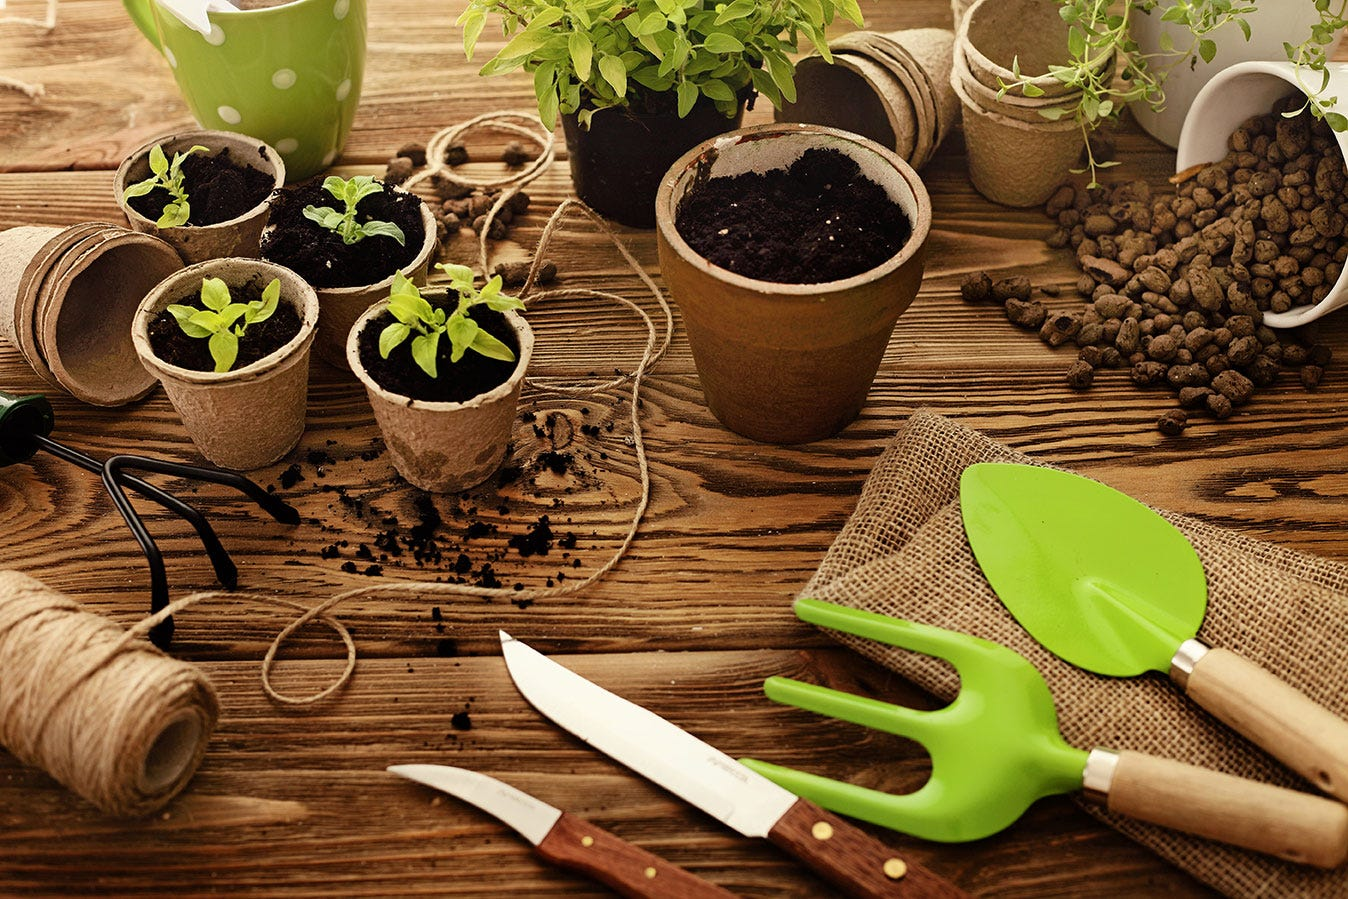 Pots, plants and gardening equipment